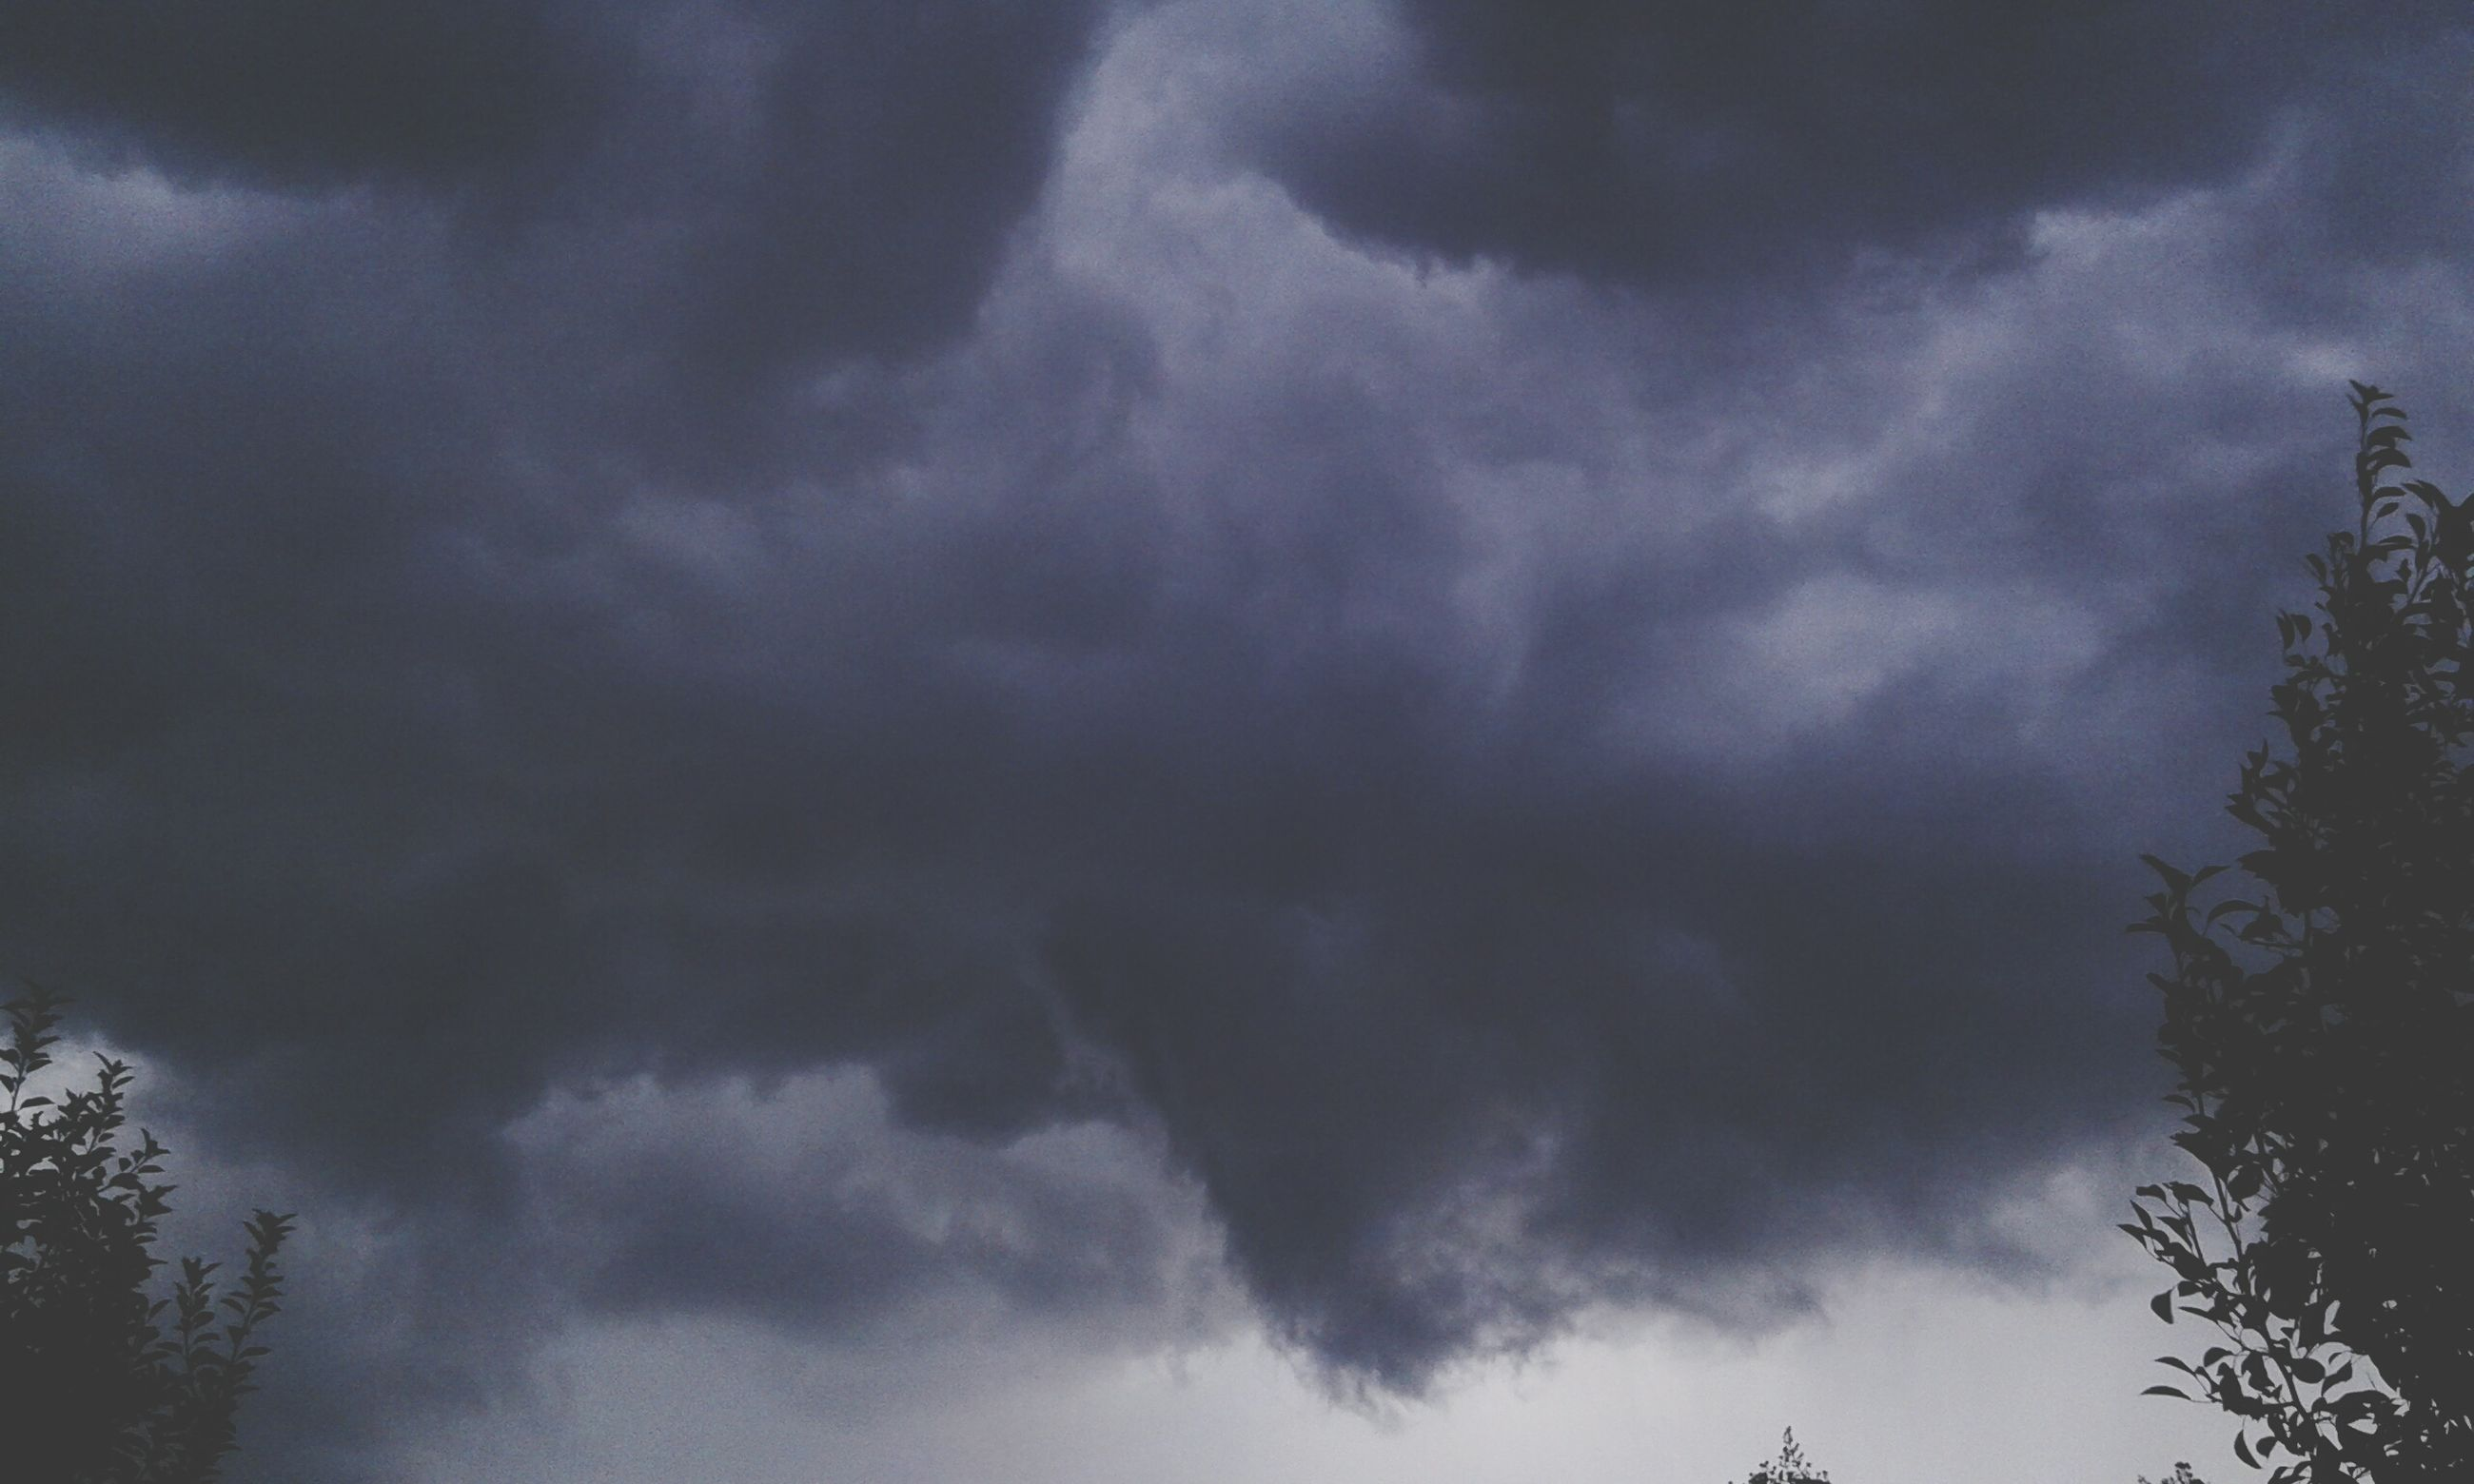 sky, low angle view, cloud - sky, cloudy, weather, beauty in nature, overcast, tranquility, scenics, nature, storm cloud, tranquil scene, cloudscape, tree, cloud, silhouette, dramatic sky, idyllic, outdoors, atmospheric mood